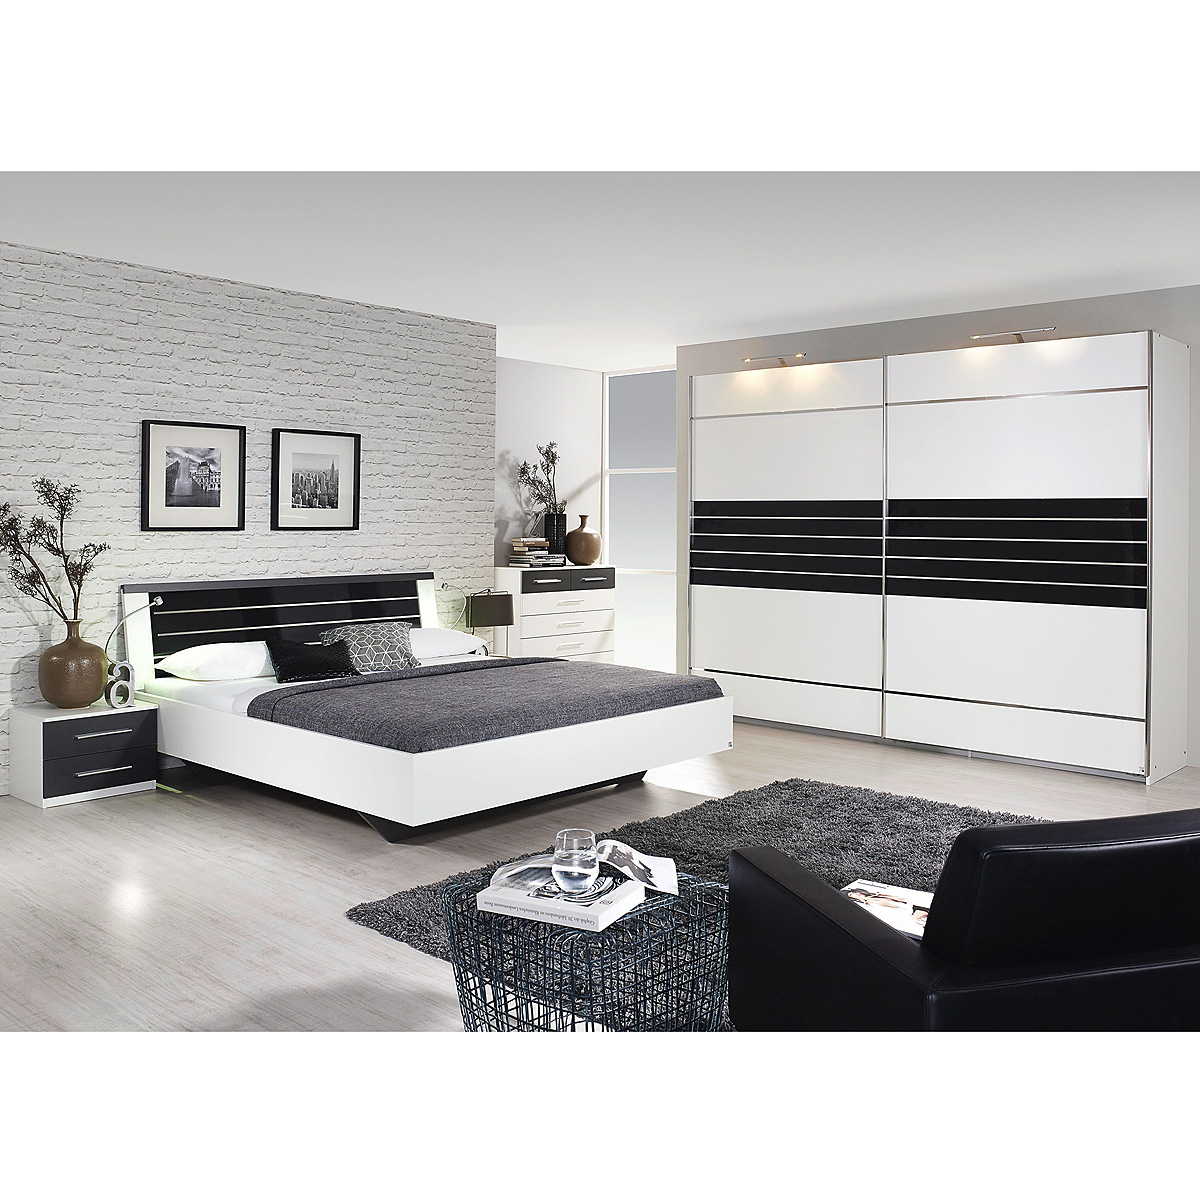 schlafzimmer set nienburg bett schrank nako wei grau. Black Bedroom Furniture Sets. Home Design Ideas